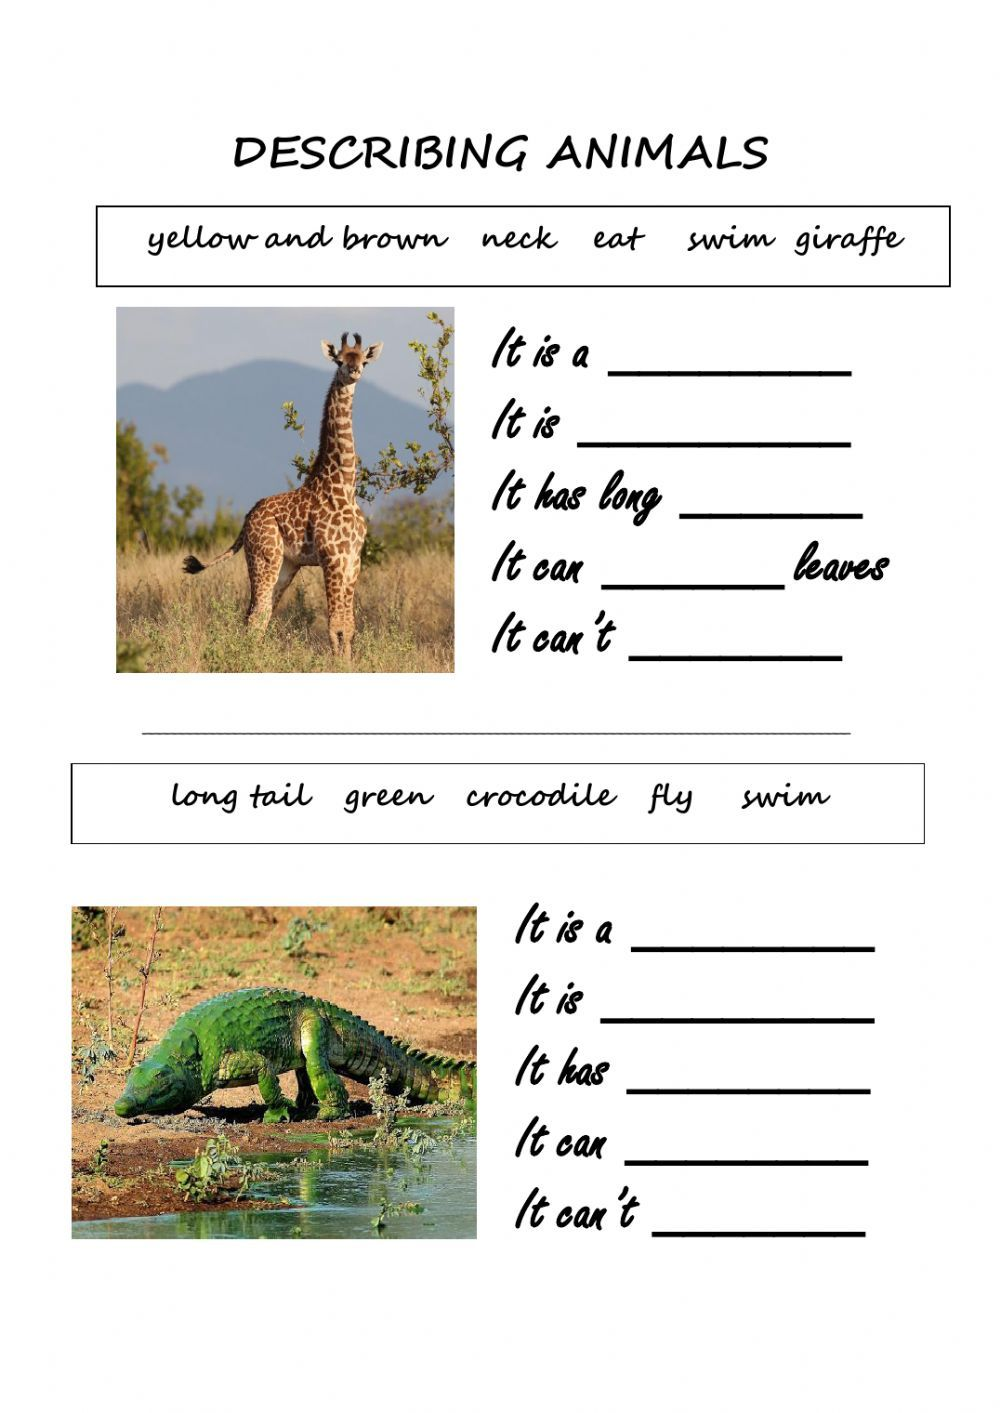 Pin By Charlotk On English In 2020 Third Grade Math Games All About Me Preschool Interactive Activities